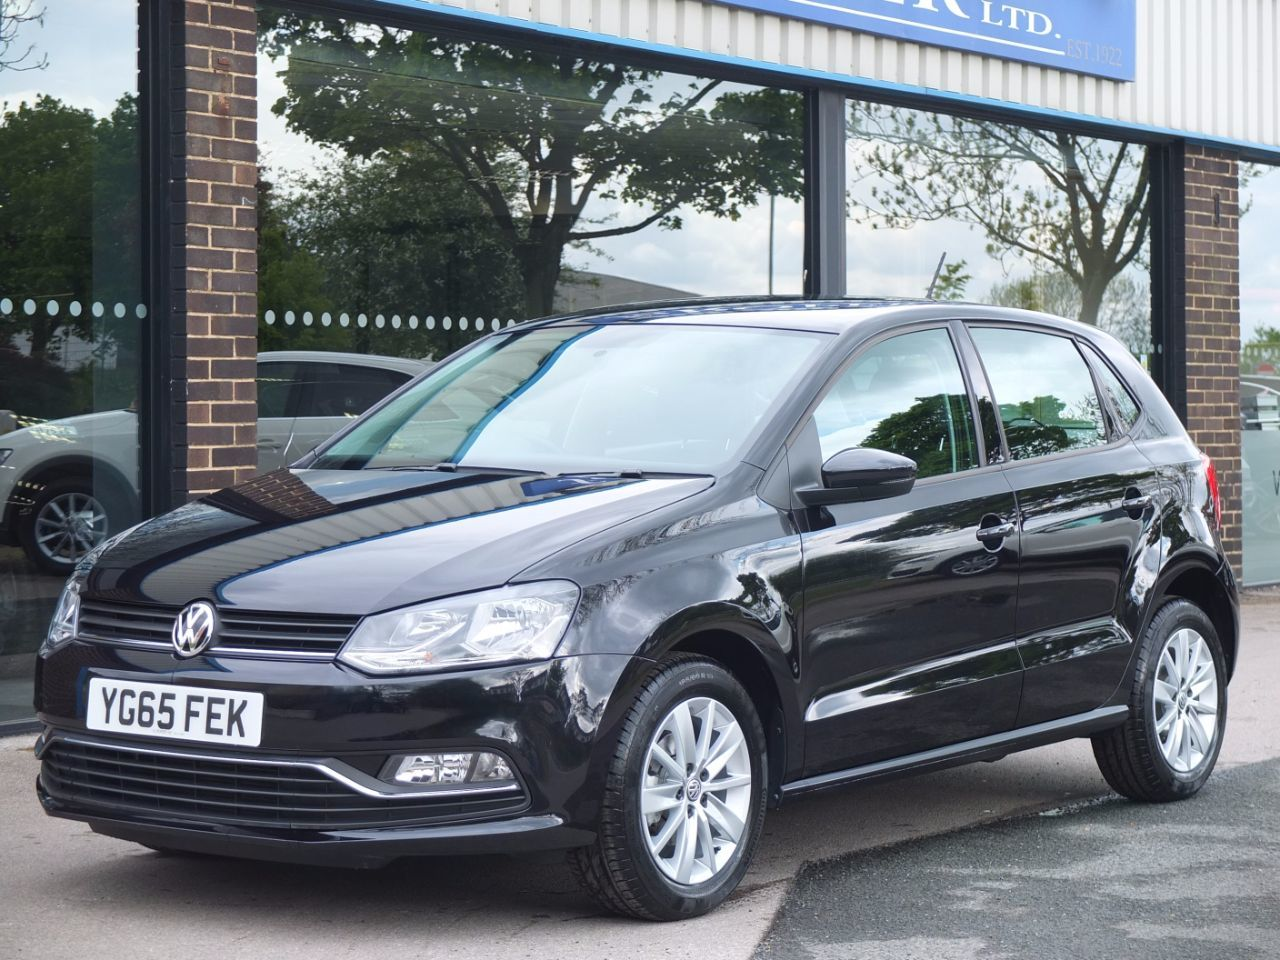 used volkswagen polo 1 2 tsi bluemotion tech se 5 door for sale in bradford west yorkshire fa. Black Bedroom Furniture Sets. Home Design Ideas